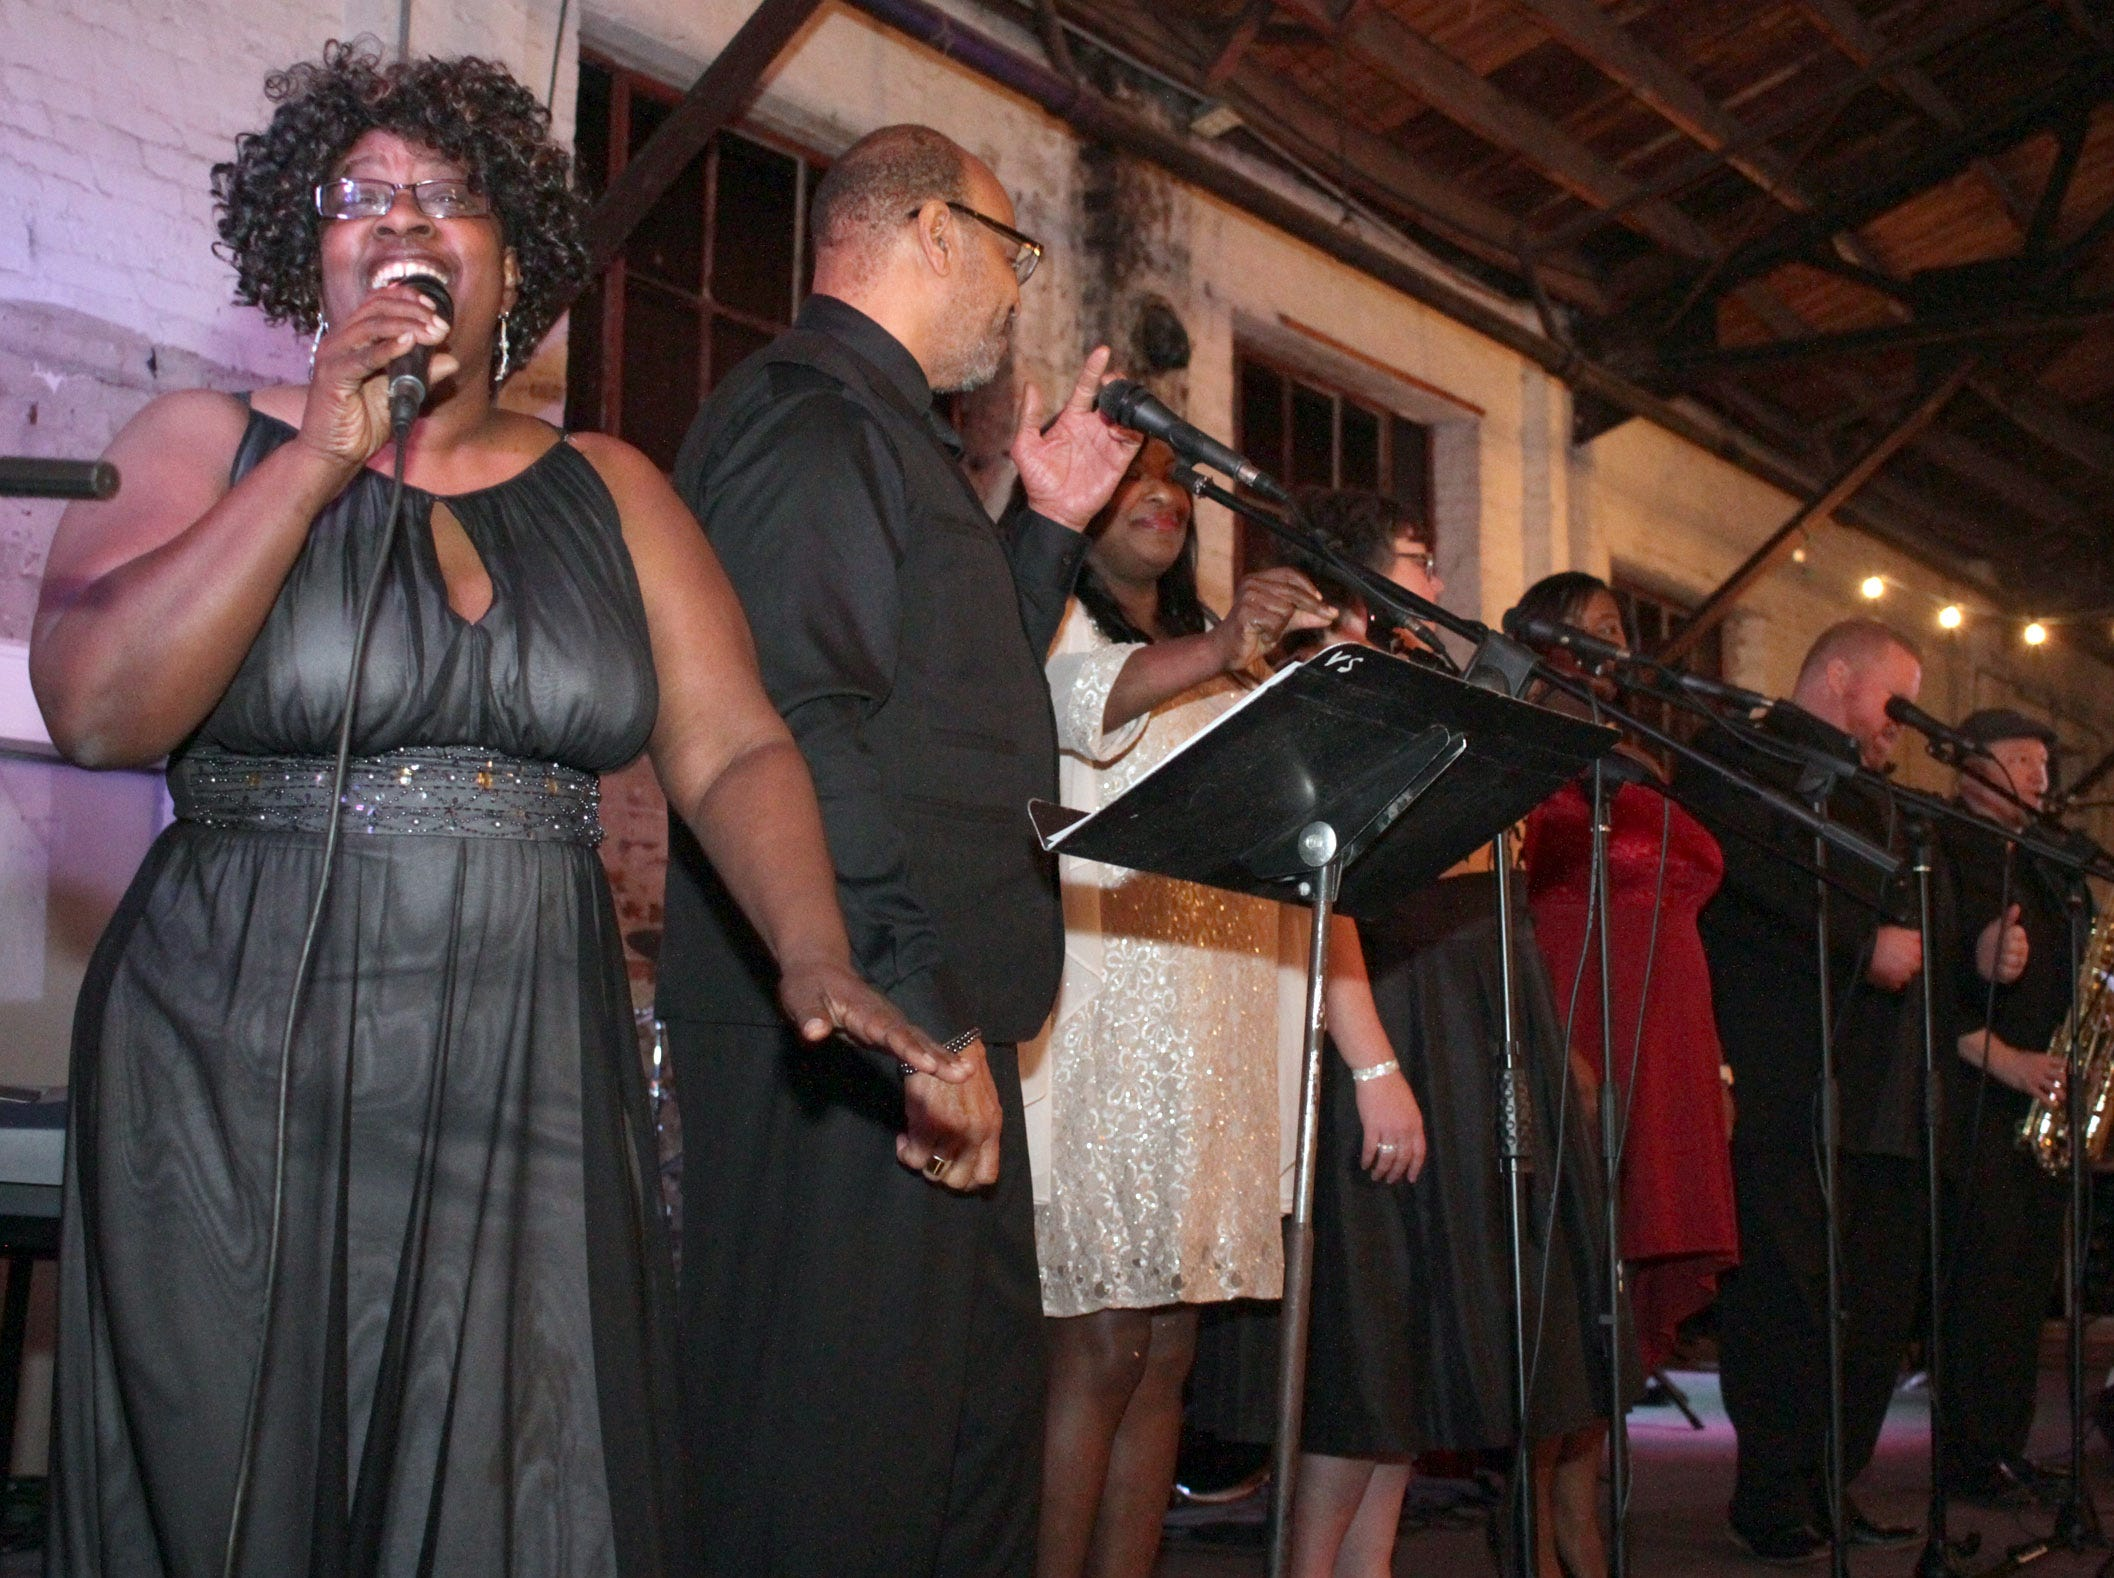 James Story and Friends provide the enetertainment at the Green and Gold Gala on Saturday, March 9, 2019.